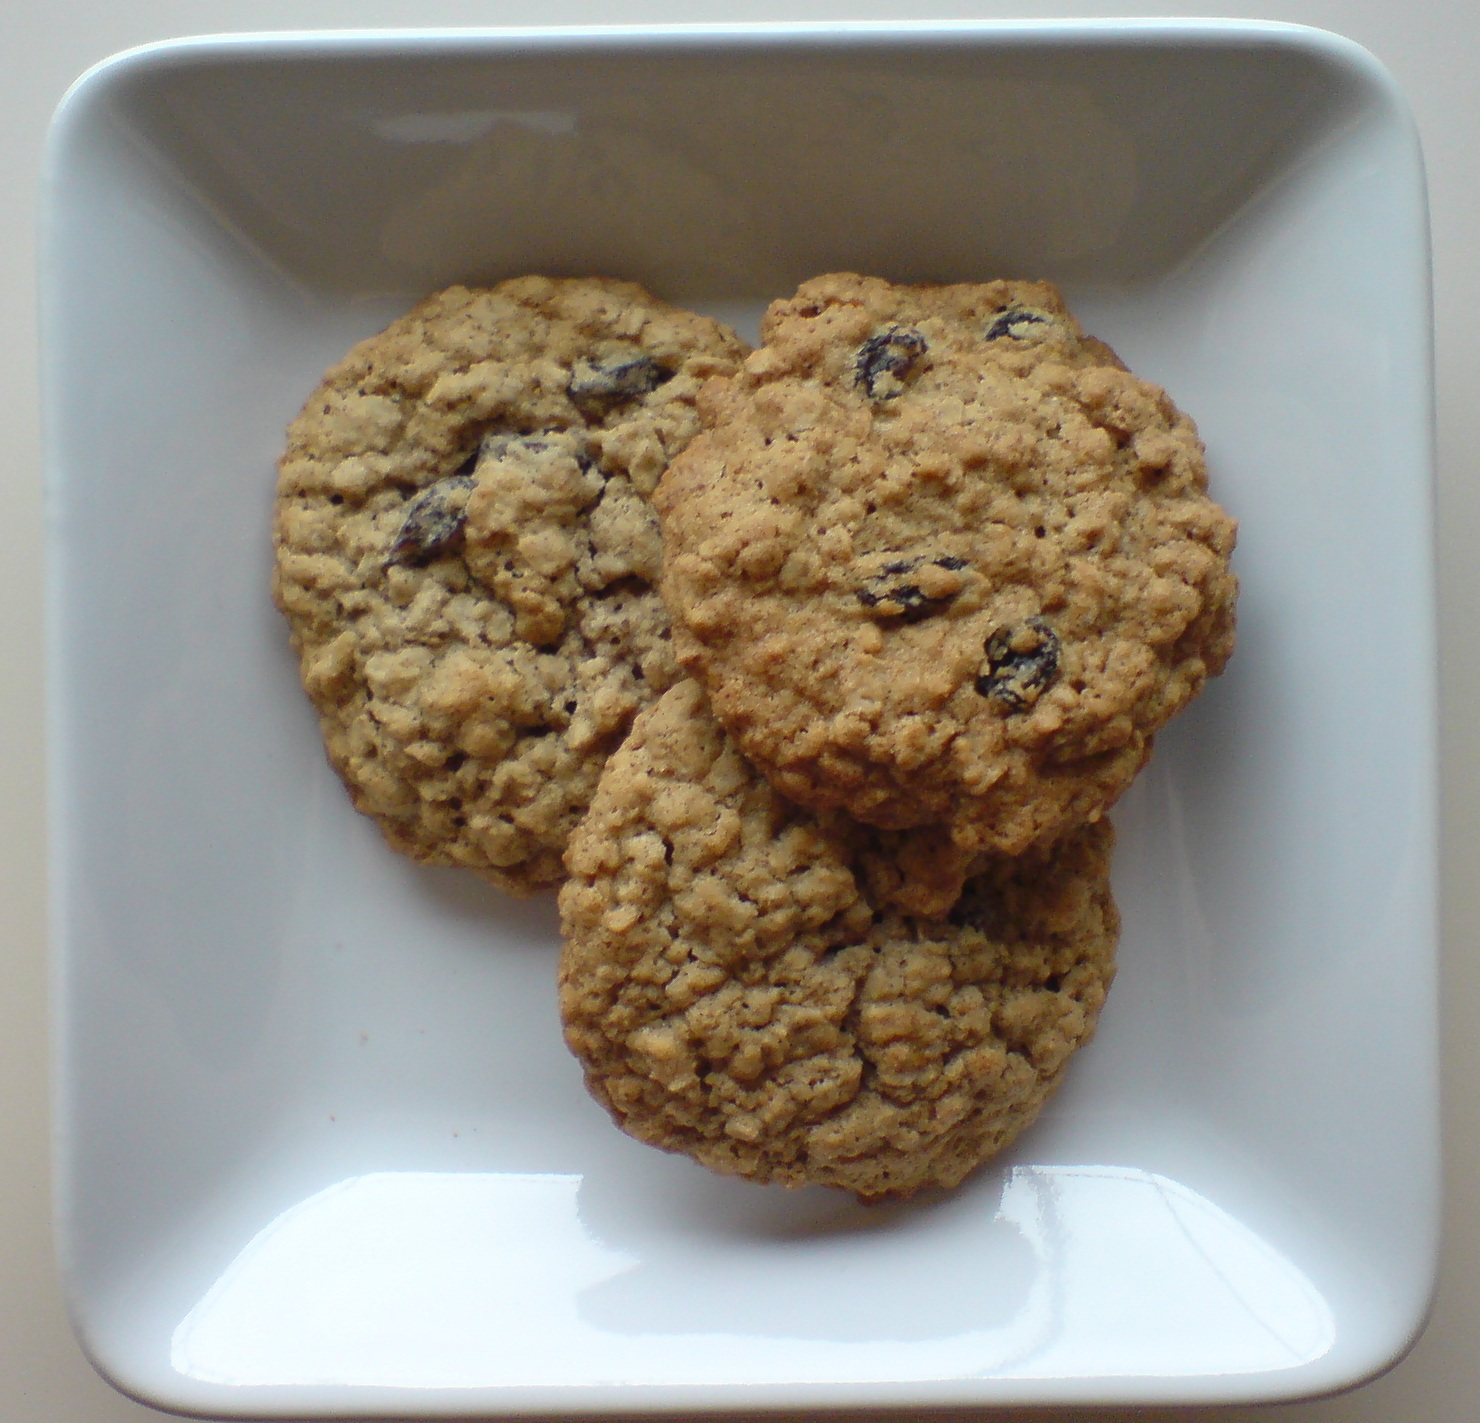 Amy Rose Designs: Project Fun Friday - Oatmeal Raisin Cookies